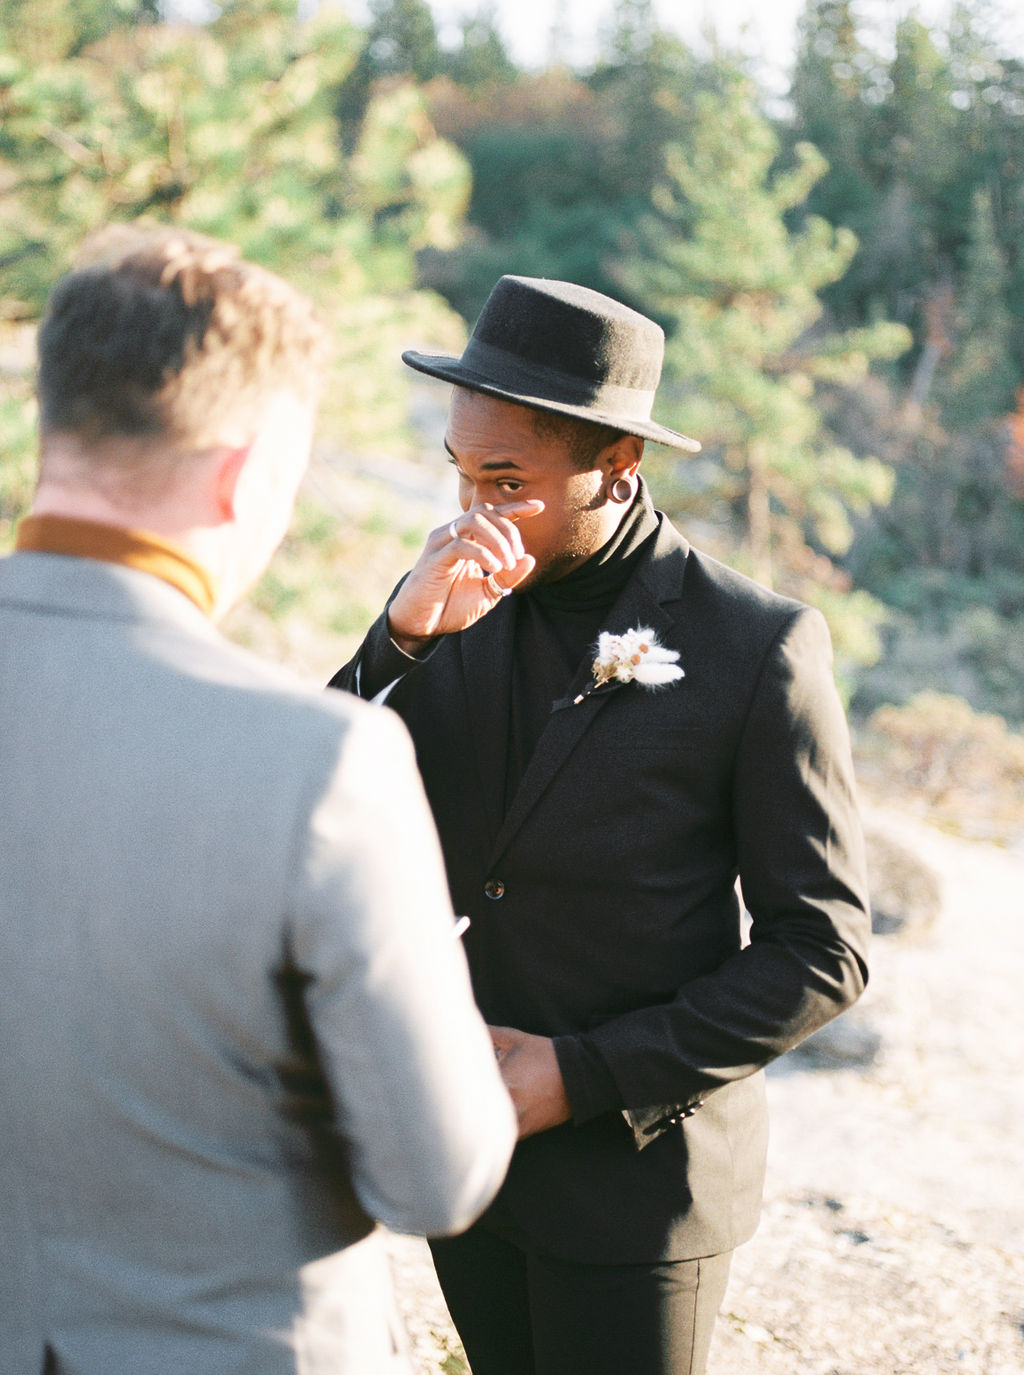 grooms reading vows during ceremony